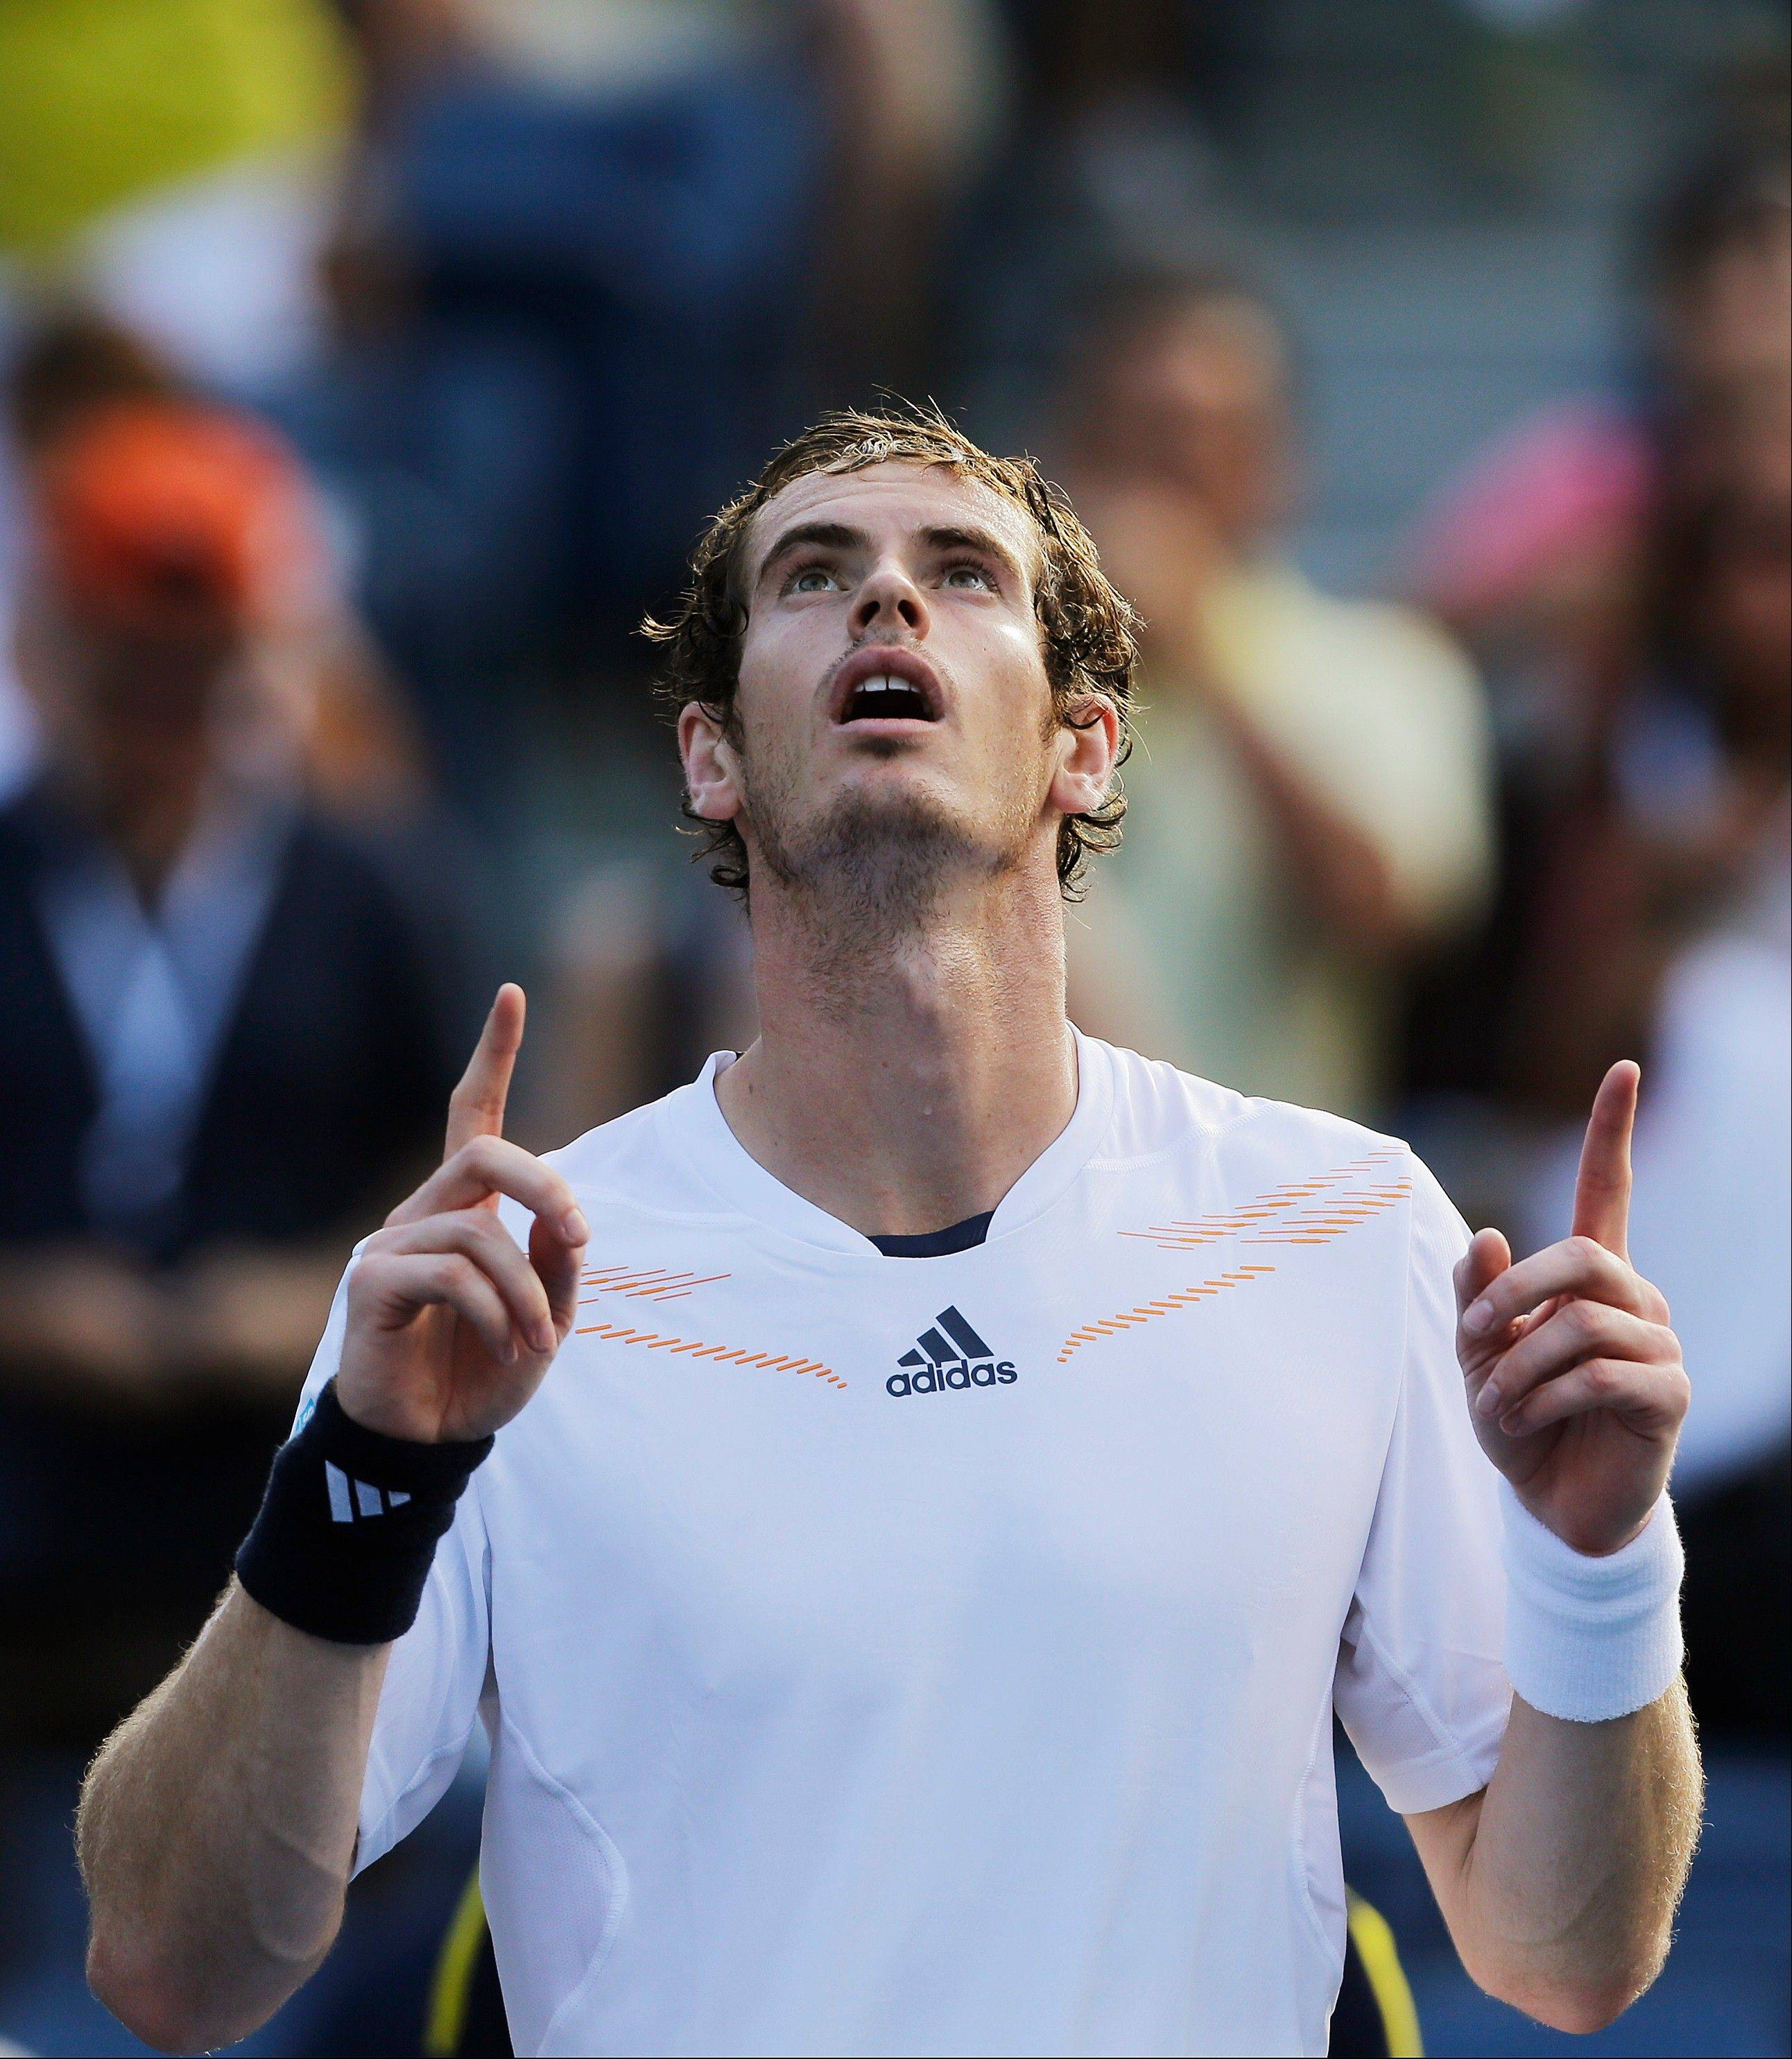 Britain's Andy Murray celebrates after winning his match against Alex Bogomolov Jr. of Russia on Monday at the U.S. Open tennis tournament in New York.